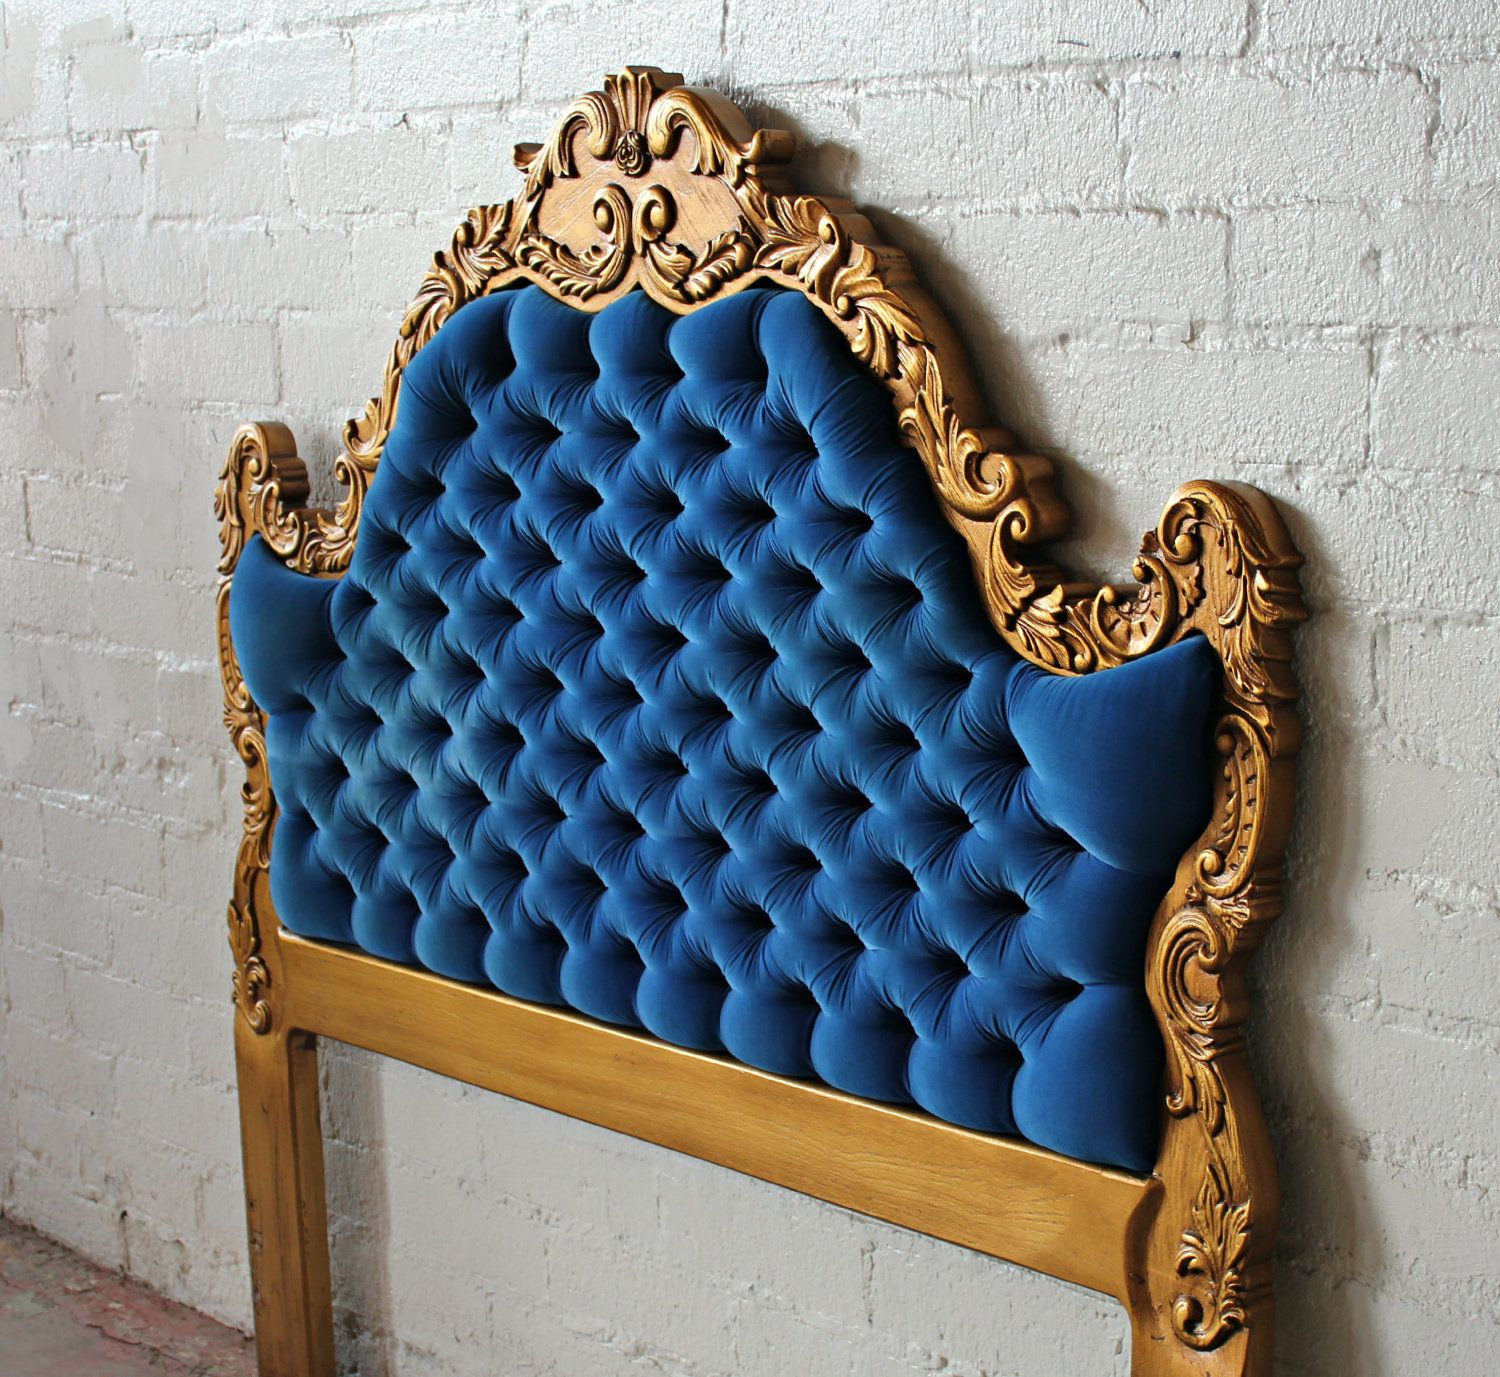 Exquisite Hollywood Regency Deco Royal Blue And Gold Tufted Queen